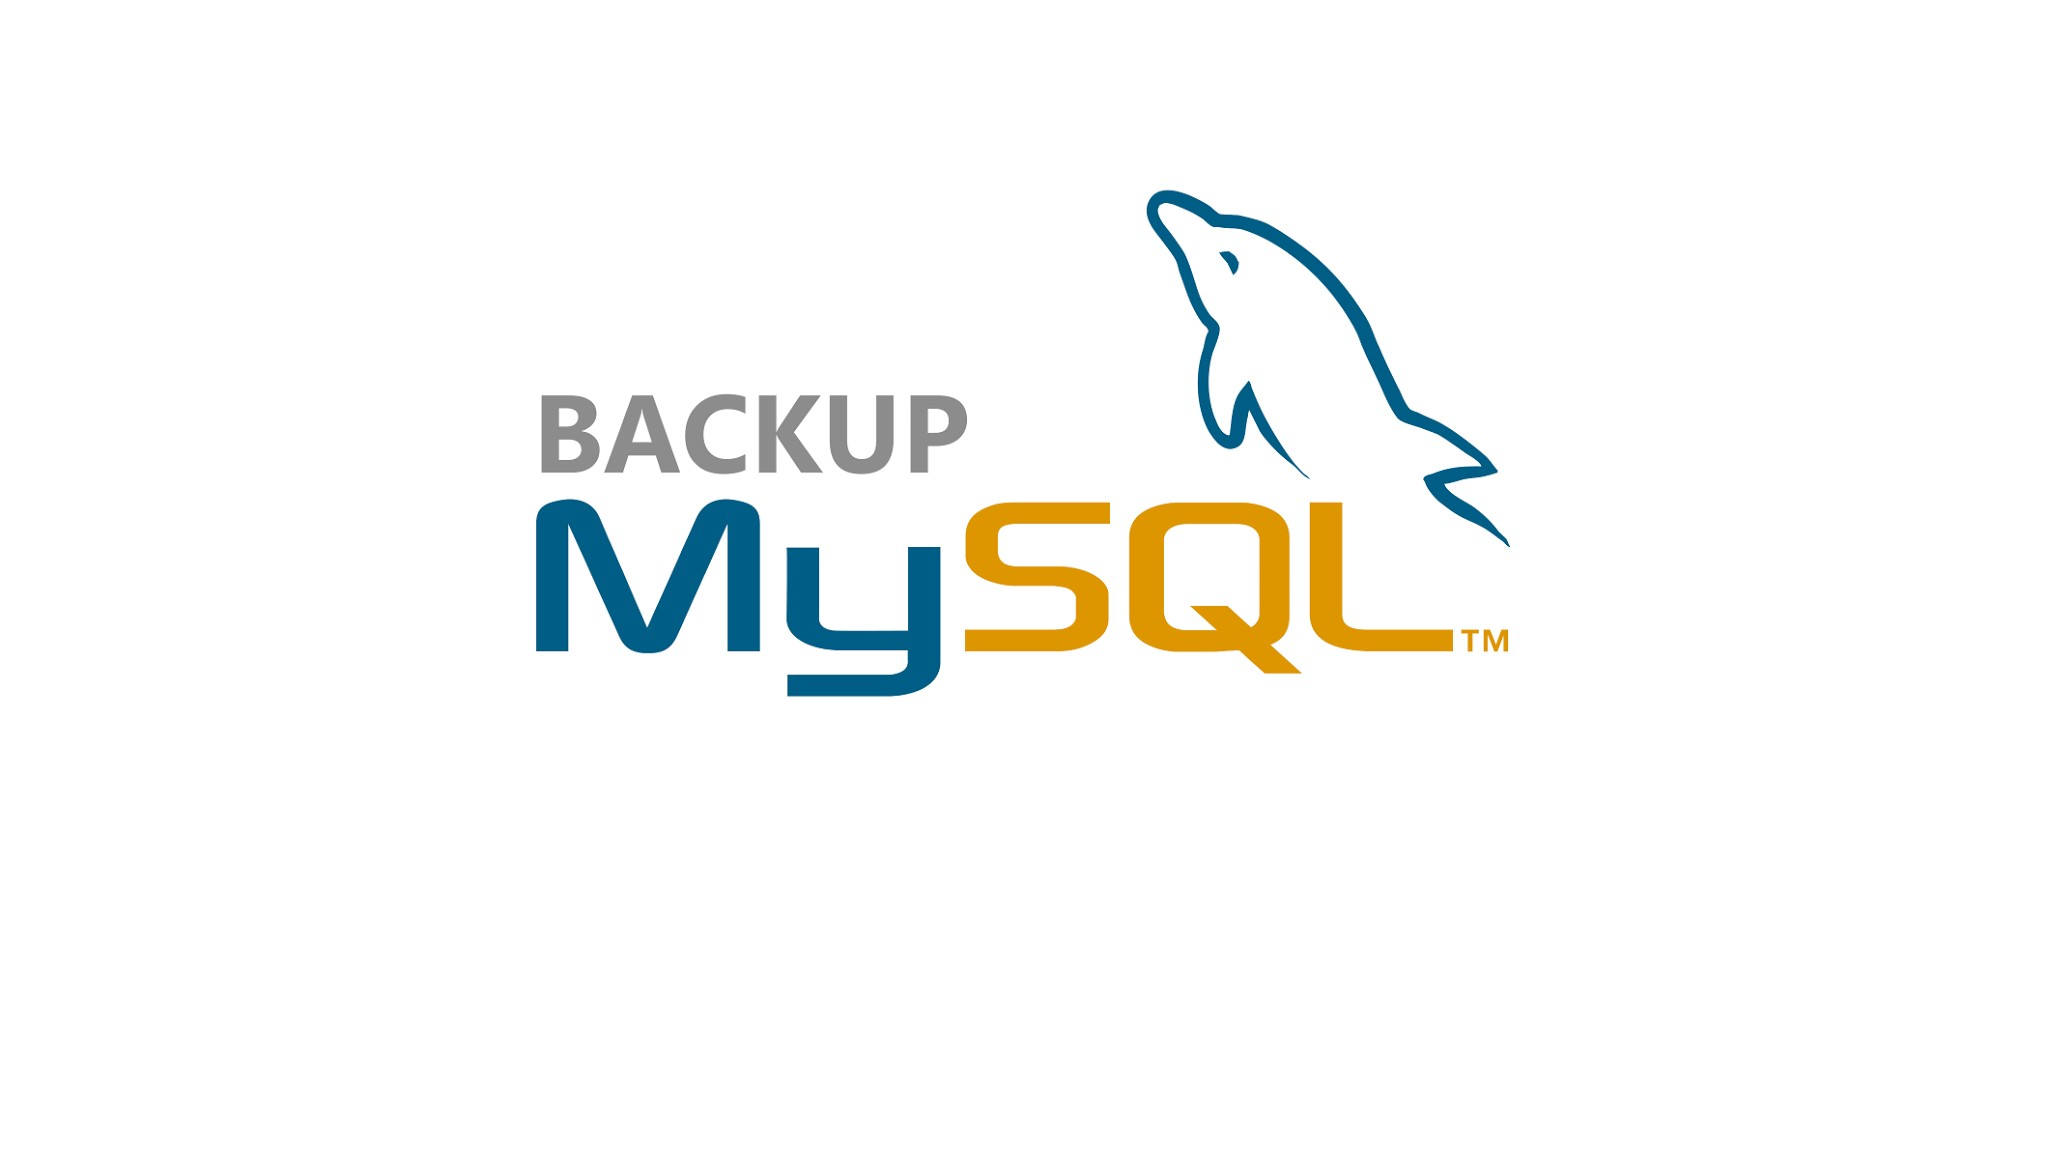 Write a script to backup files in linux